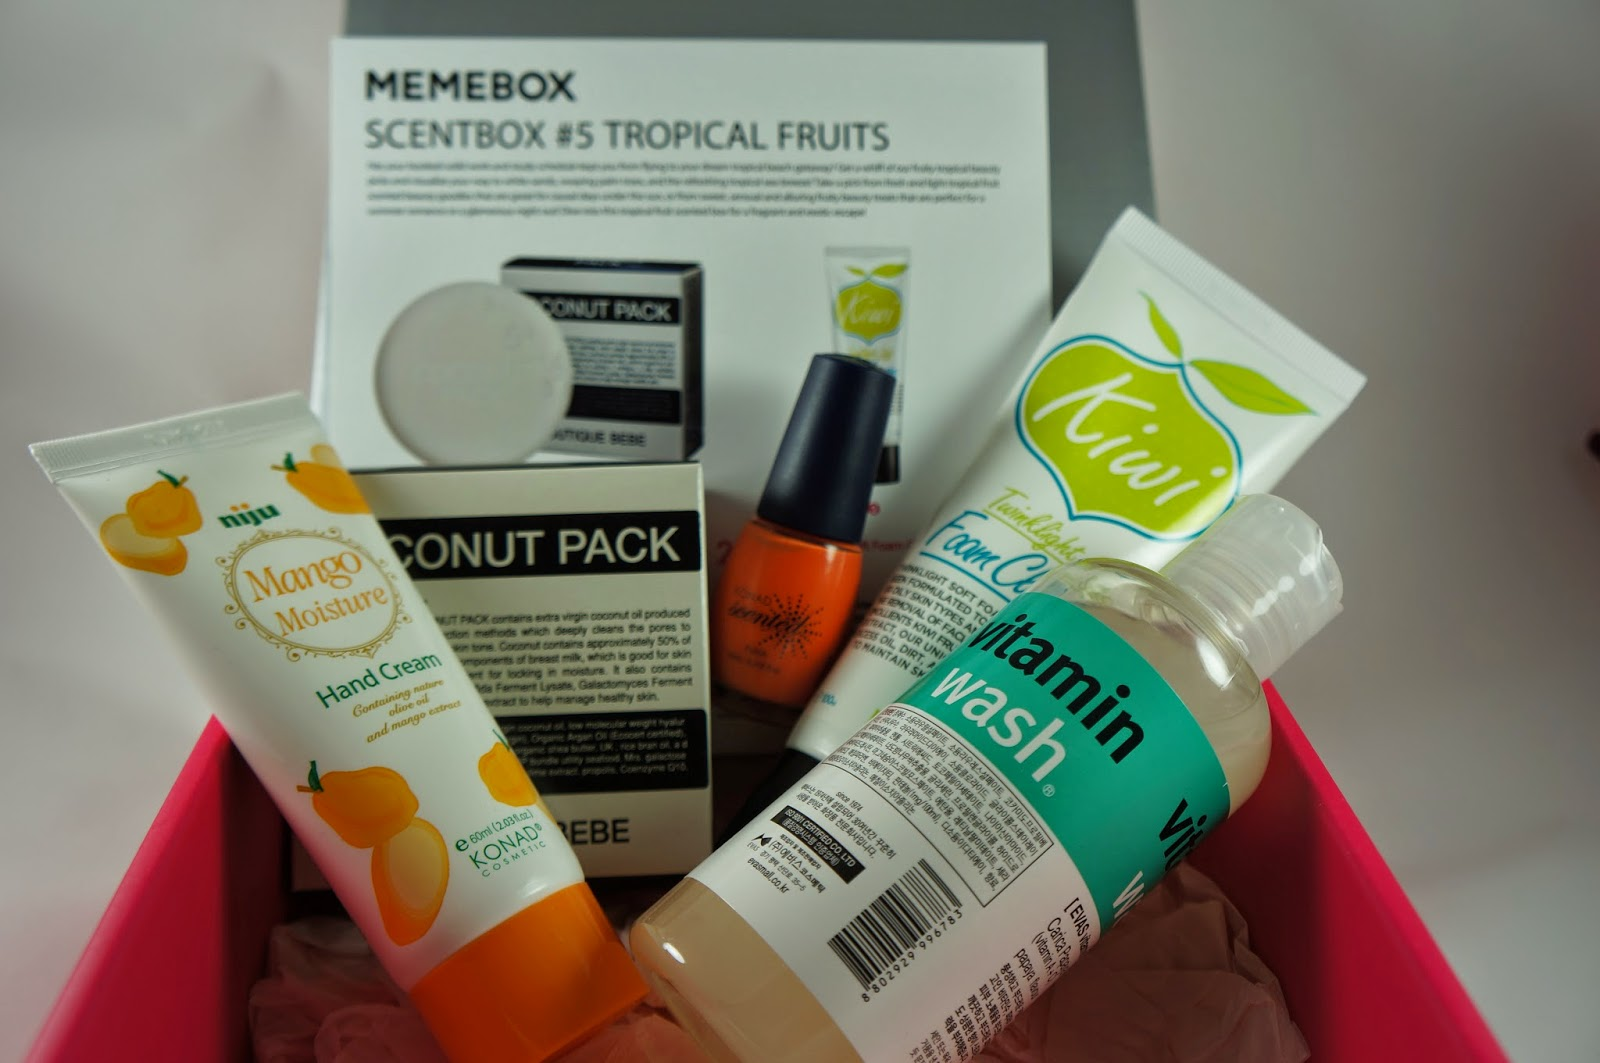 Memebox Scentbox #5 Tropical Fruits Unboxing Review